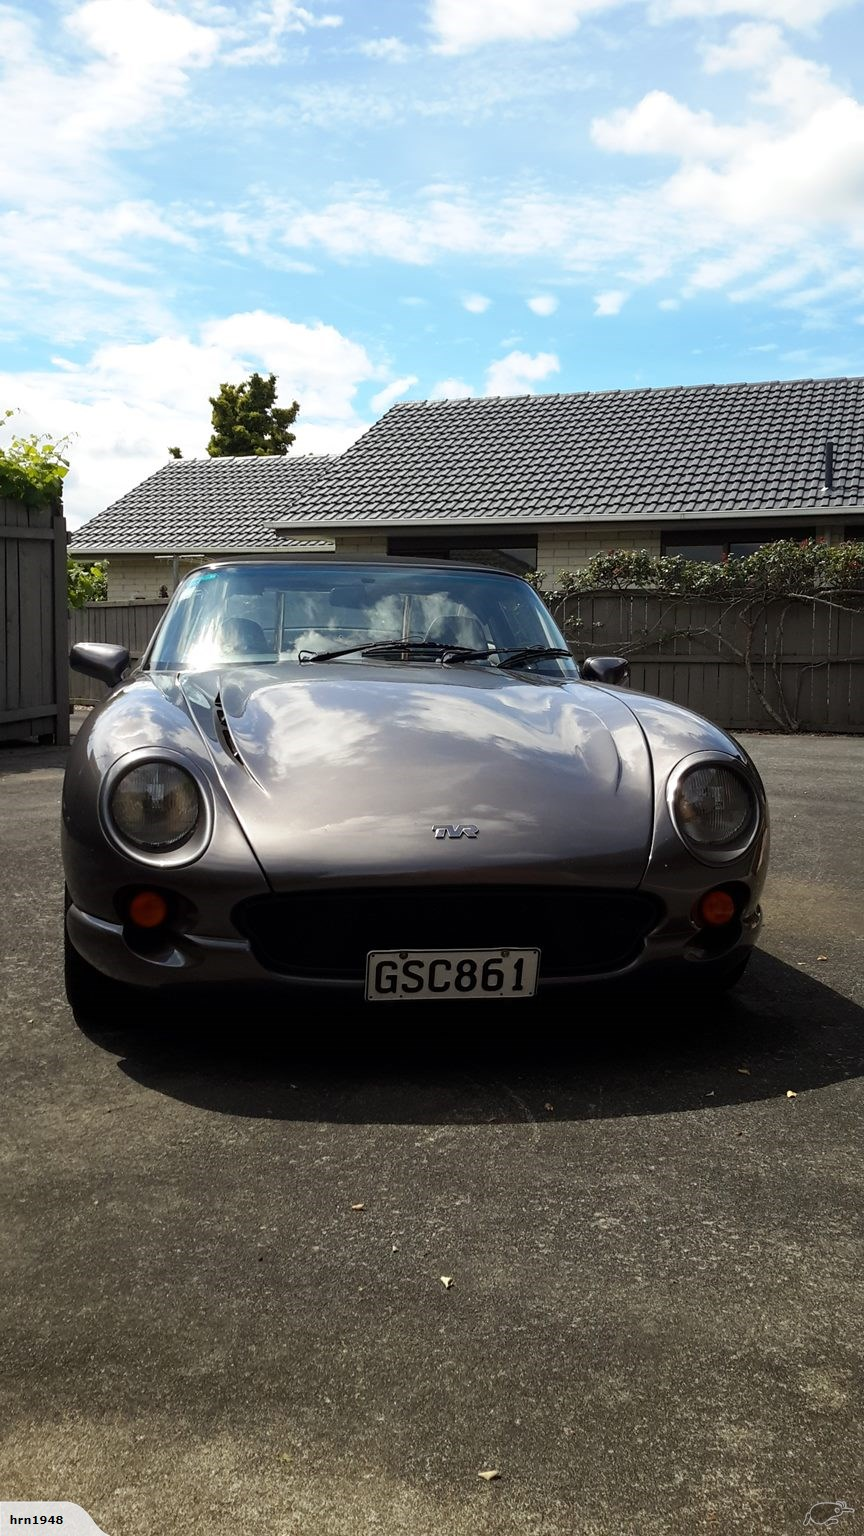 For Sale TVR Sportscars New Zealand Home - Sports cars nz for sale